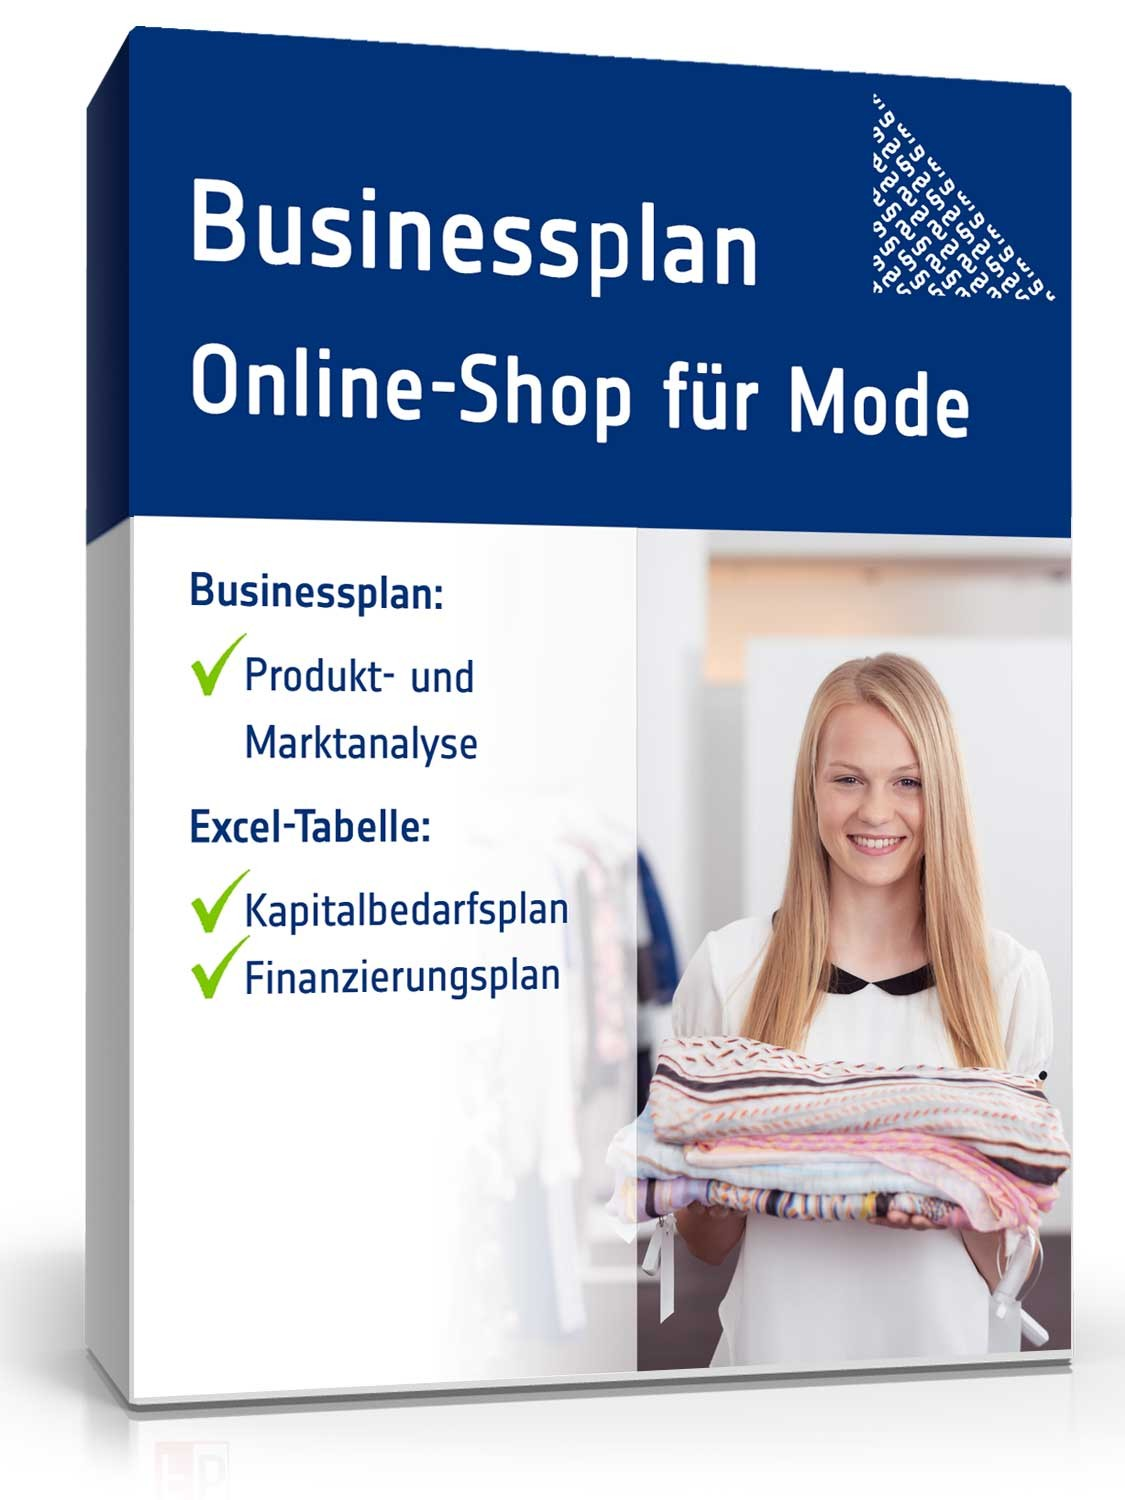 Businessplan Online-Shop für Mode